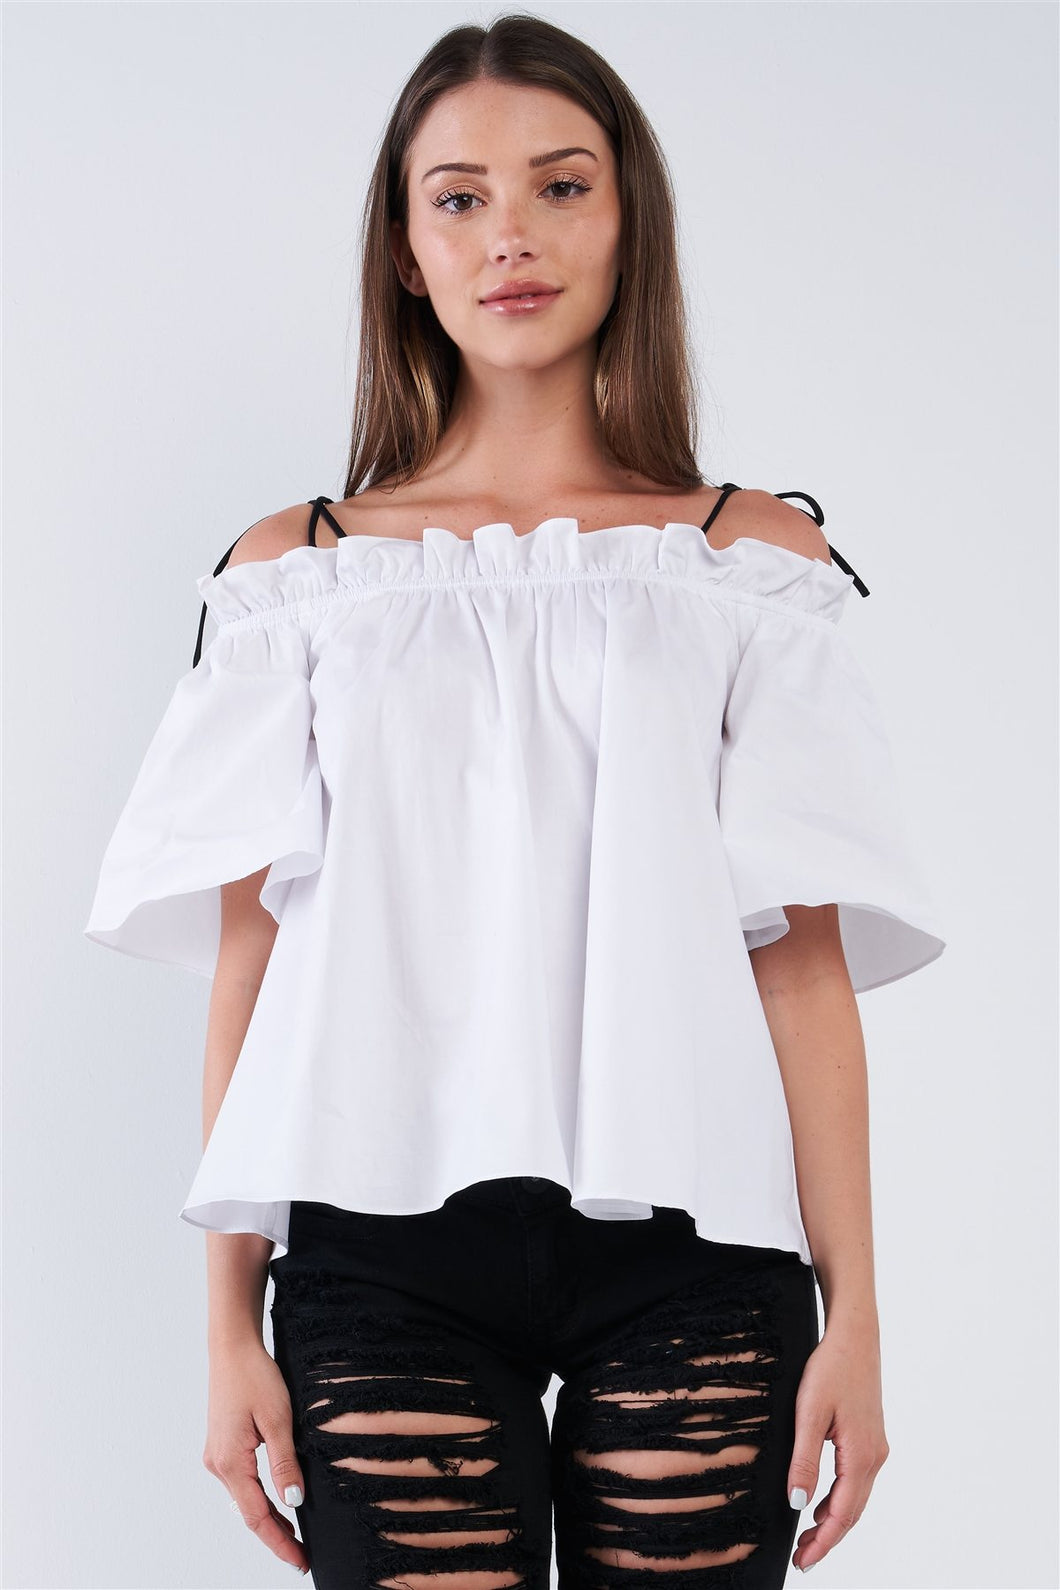 White Cotton Relaxed Fit Stretchy Ruffle Hem Off-the-shoulder Top With Black Self Tie Strings - Sensual Fashion Boutique